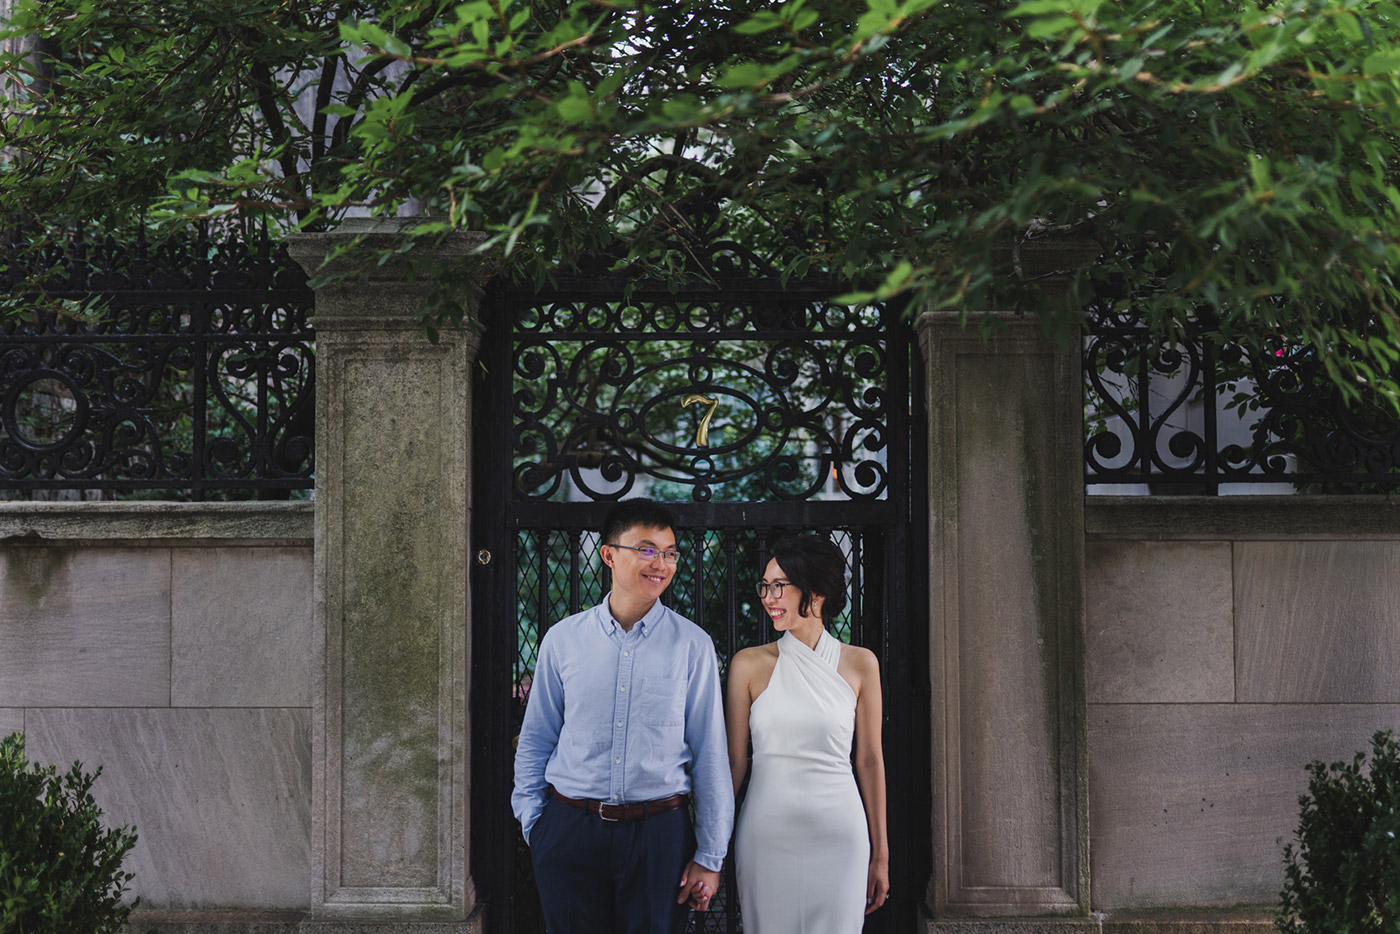 Photo of a newly engaged couple at a quiet street off of Central Park, right after their proposal